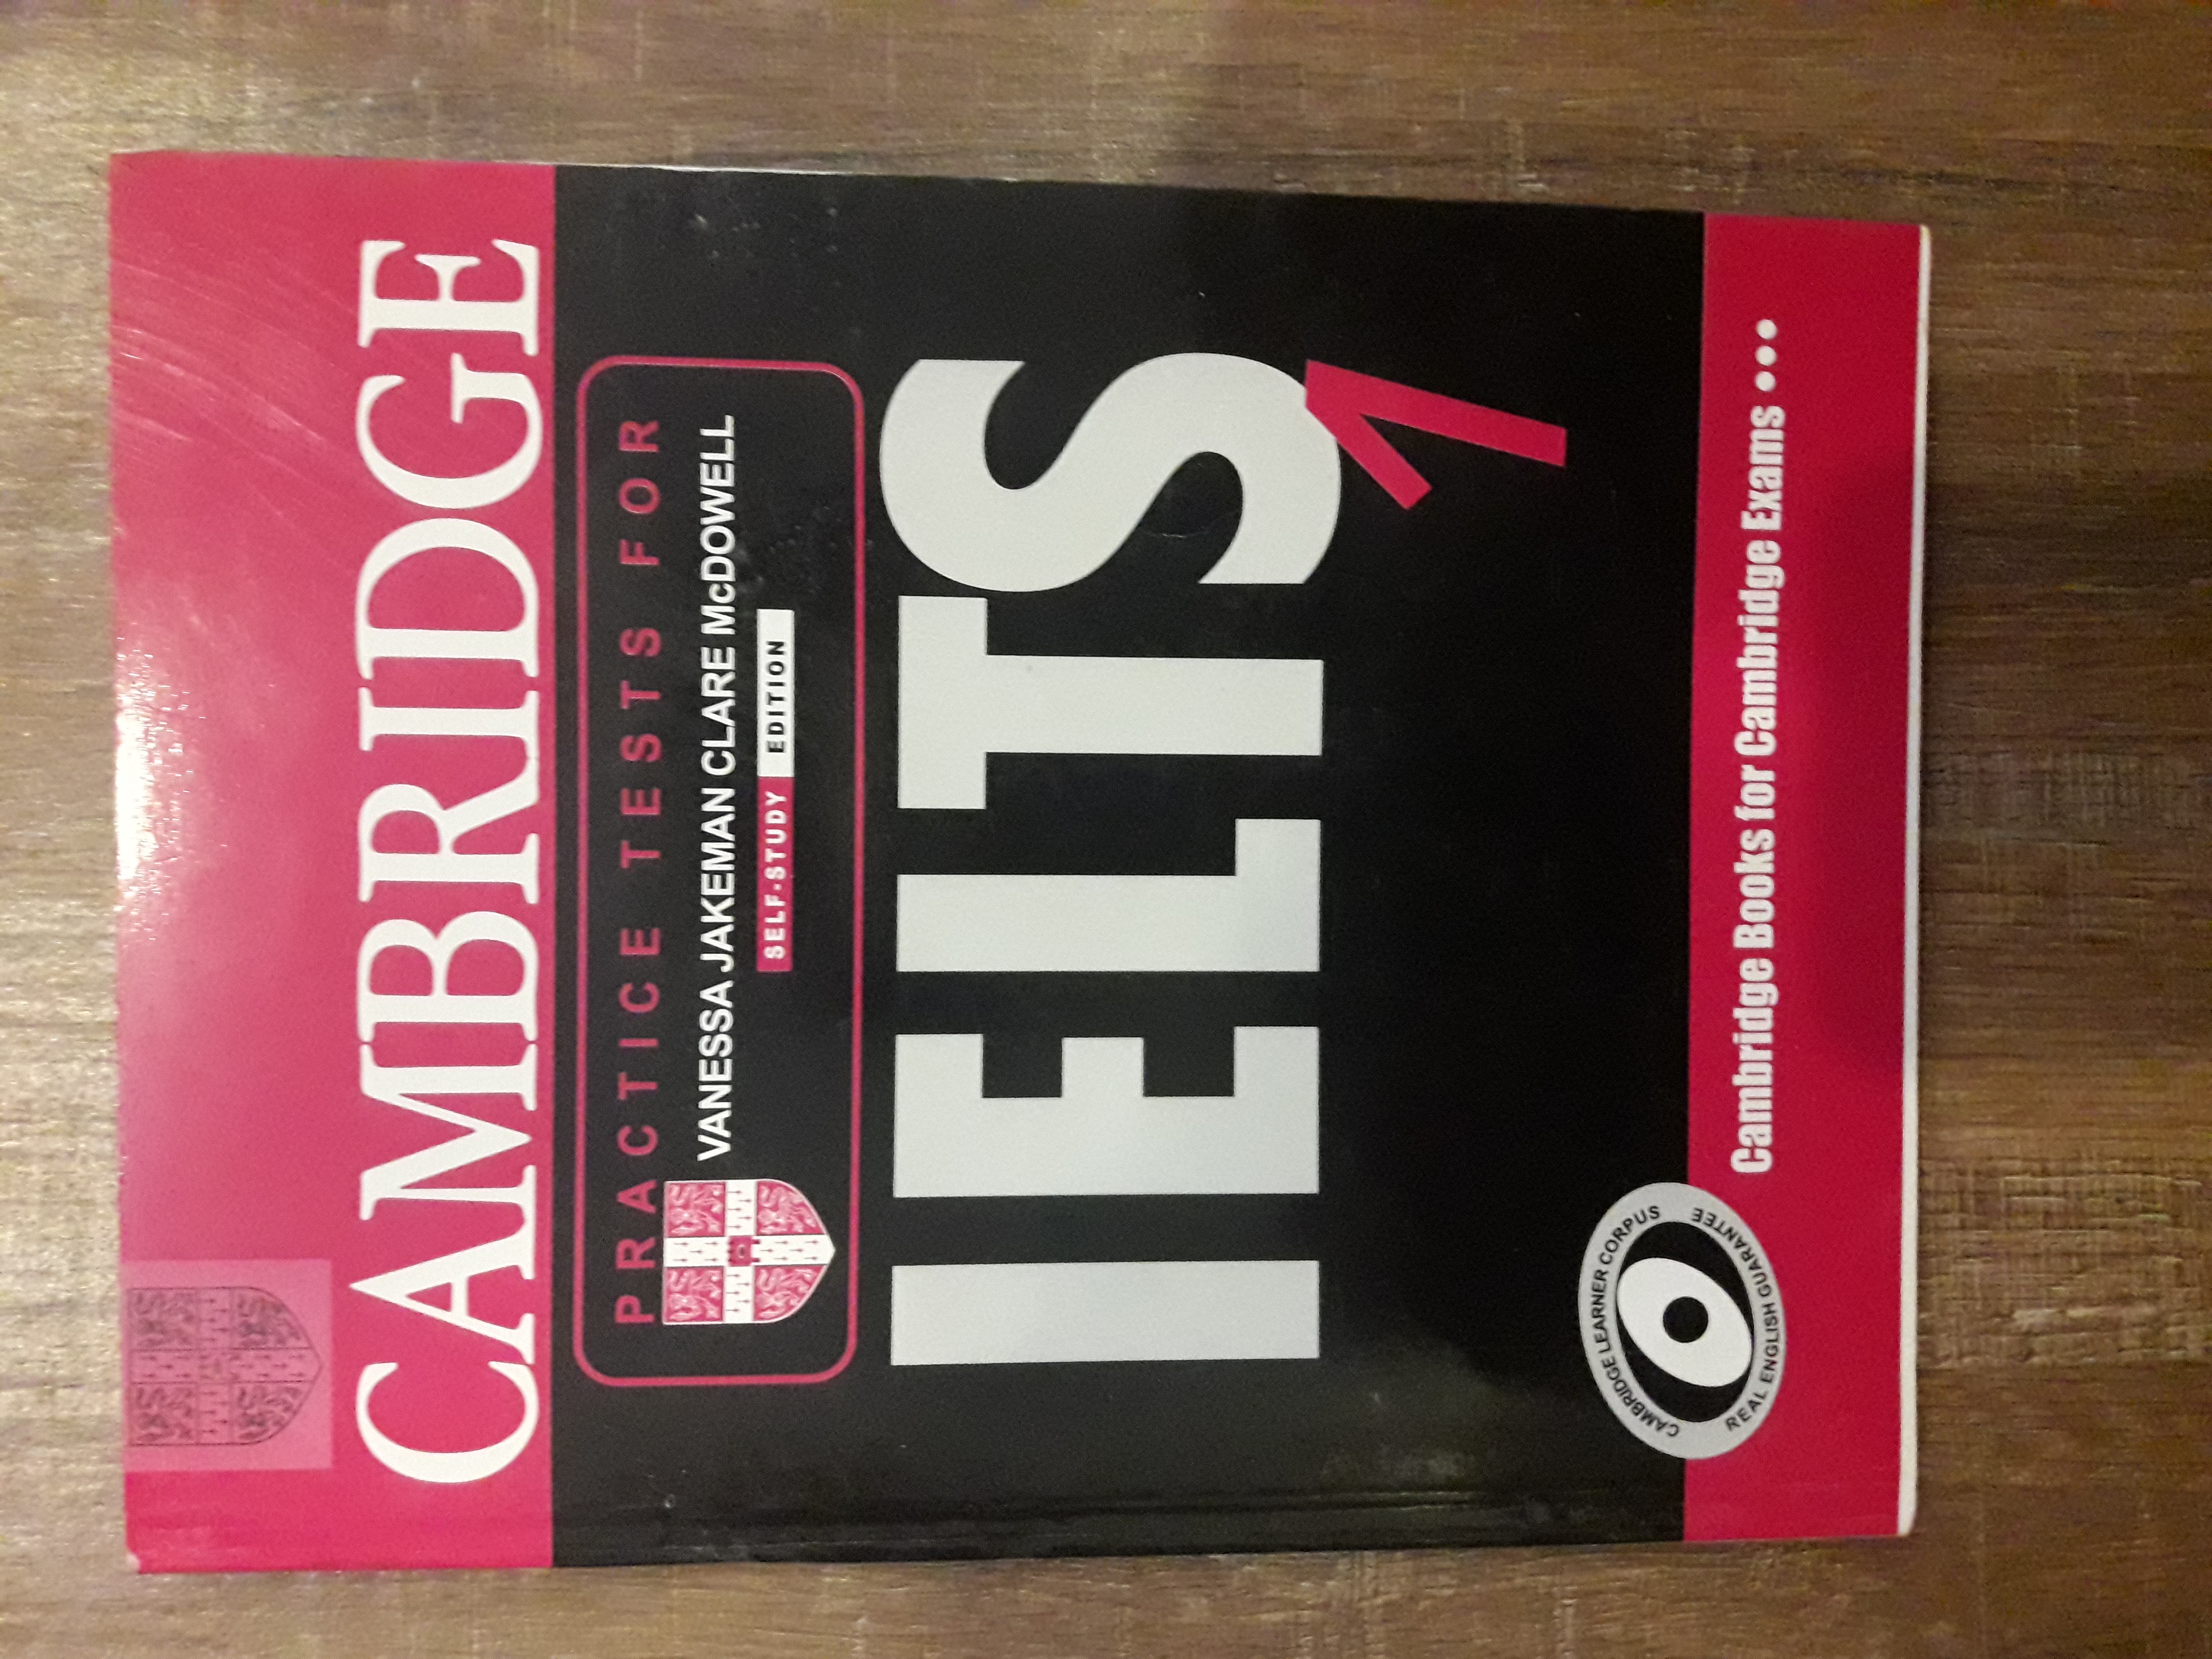 cambridge practice tests for ielts self study edition( volume 1 to 13) + cd's